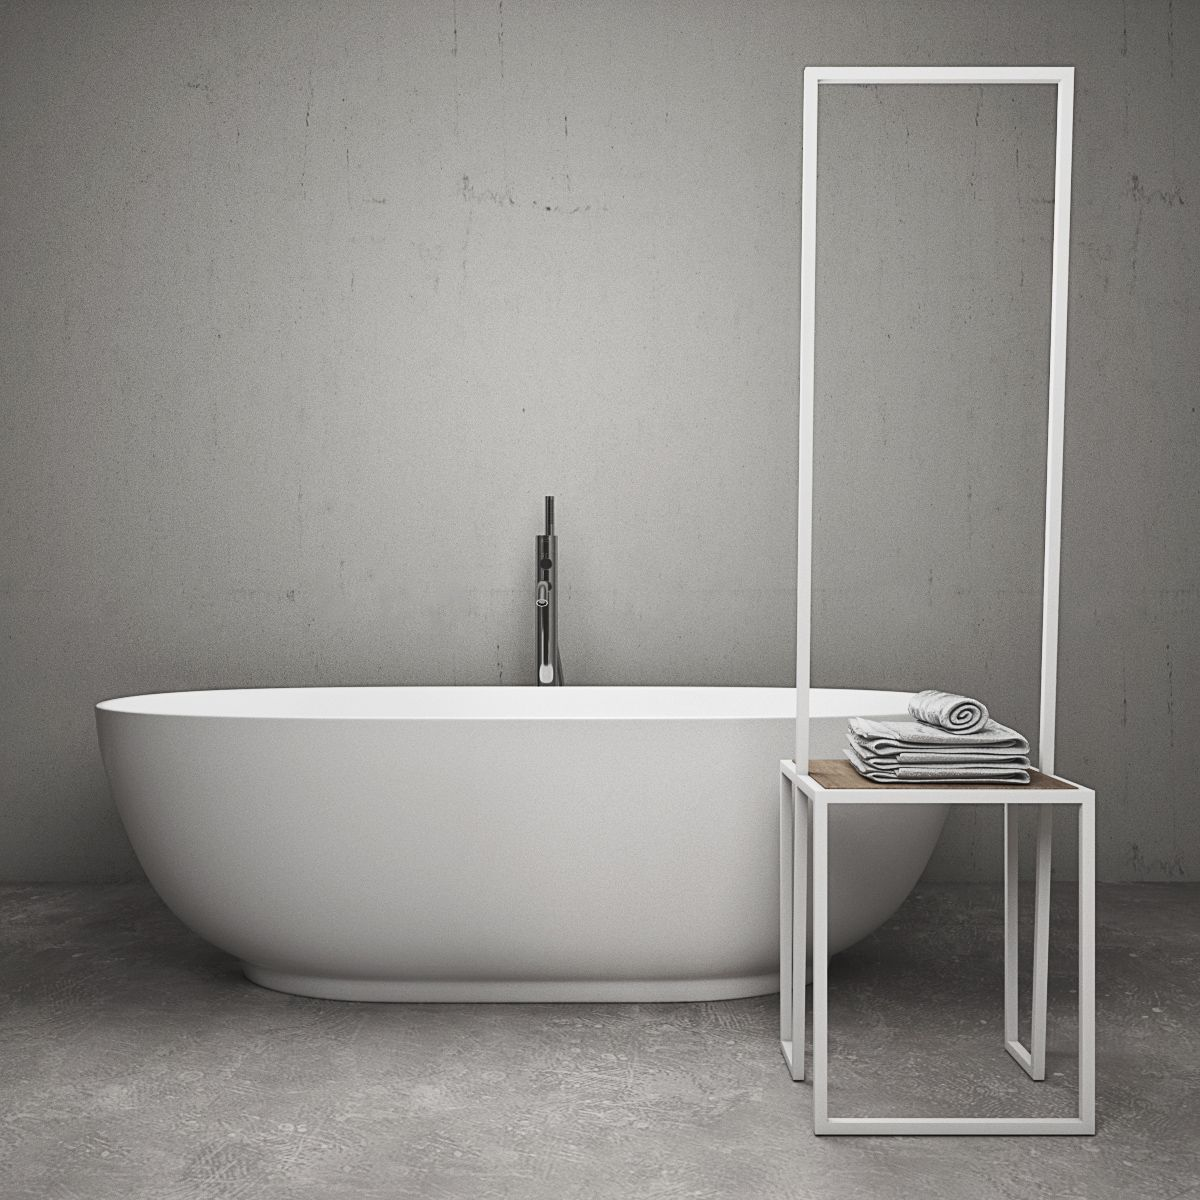 Bathroom furniture set Arcom e.Ly #furniture, #Bathroom, # ...